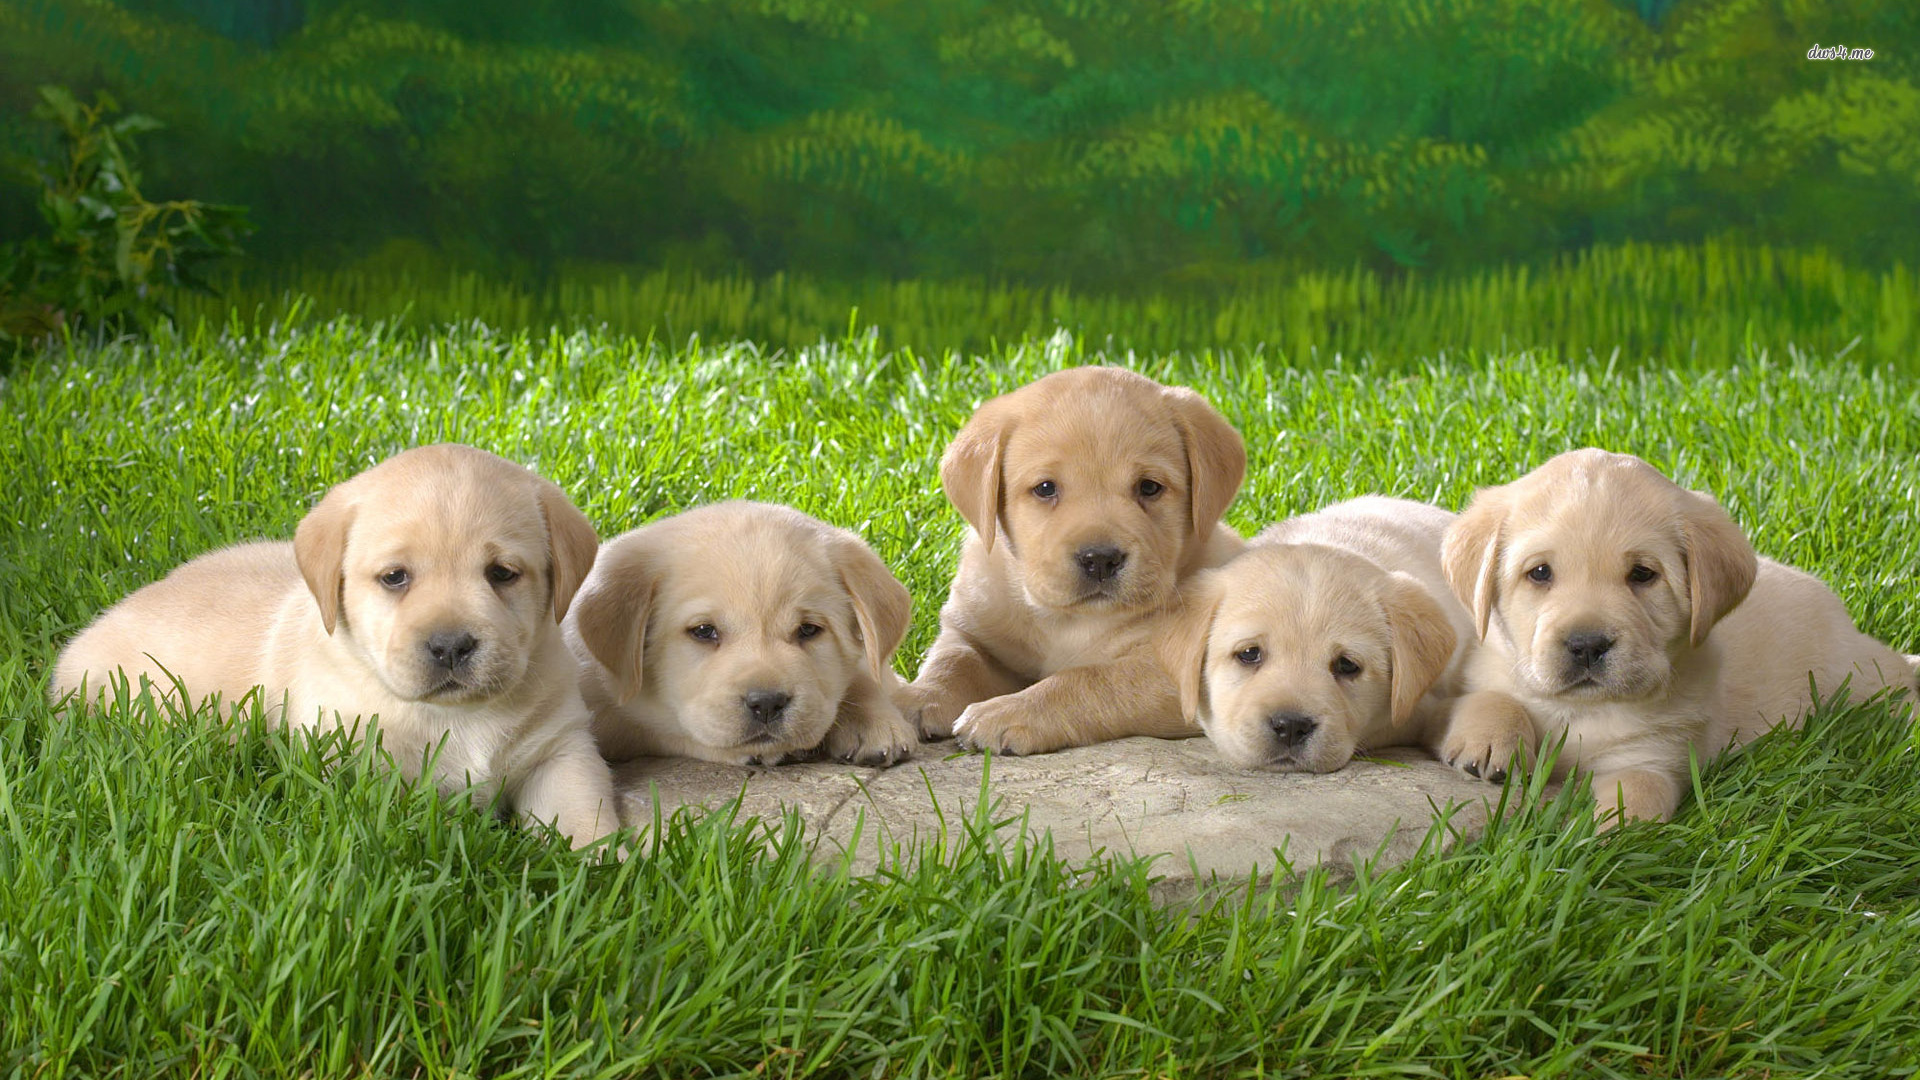 labrador puppies screensaver with wallpaper hd for mobile free 1920x1080